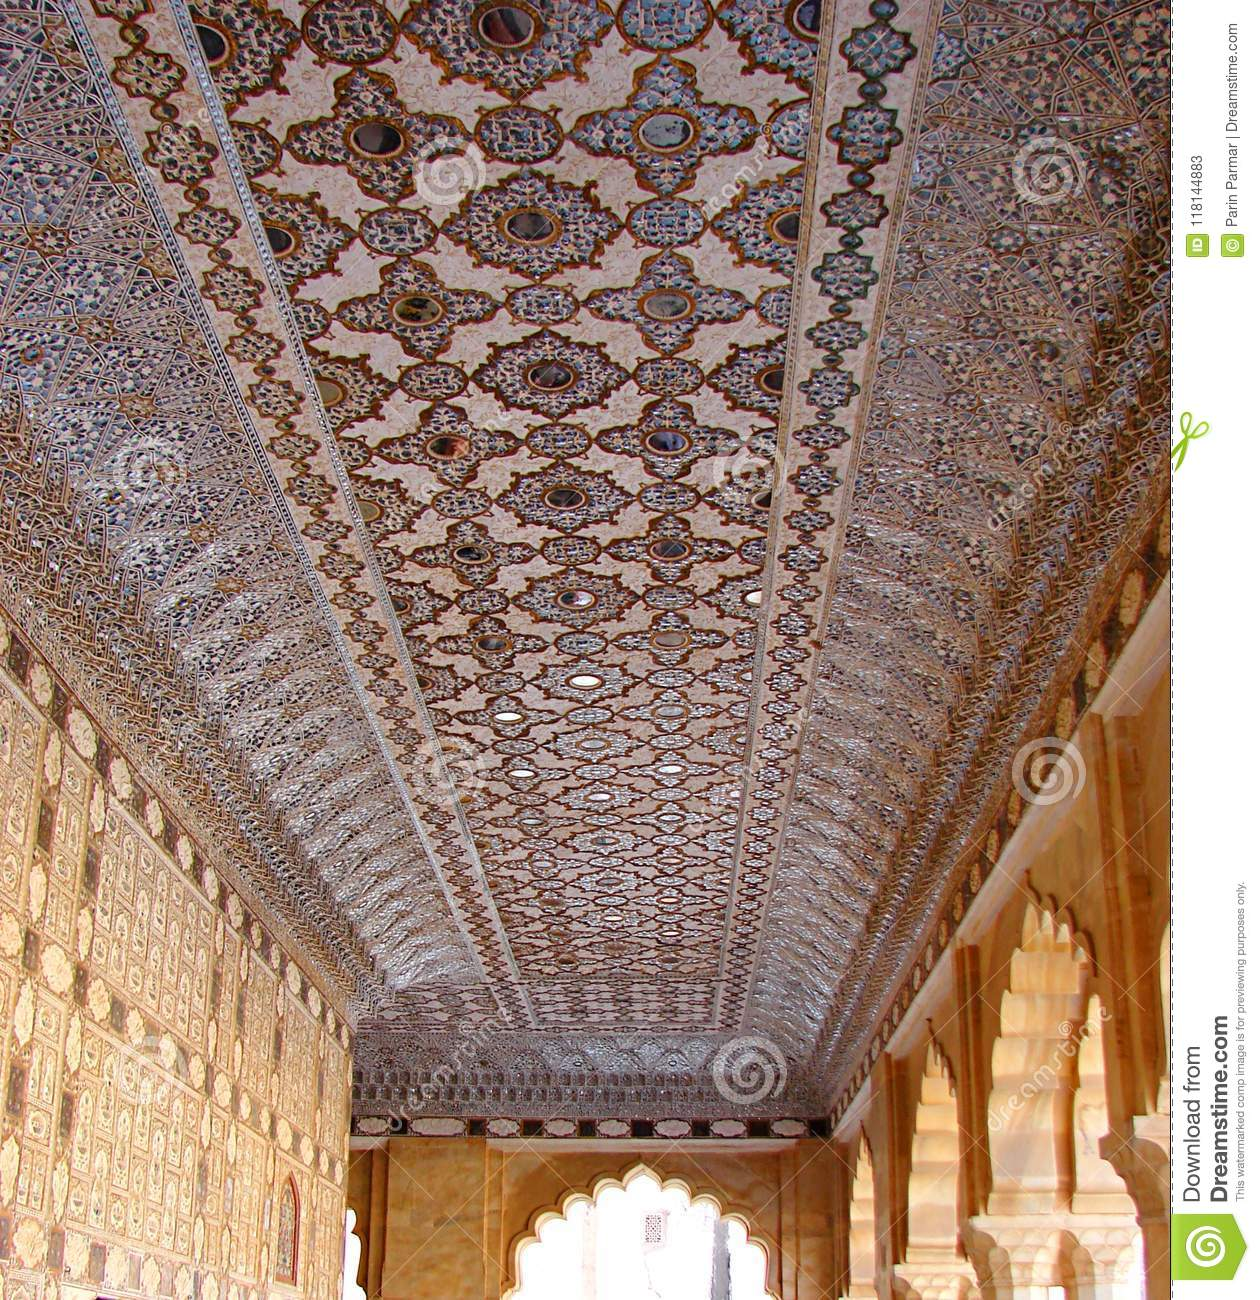 Rajasthan Palace Background Images, Stock Photos & Vectors   Shutterstock